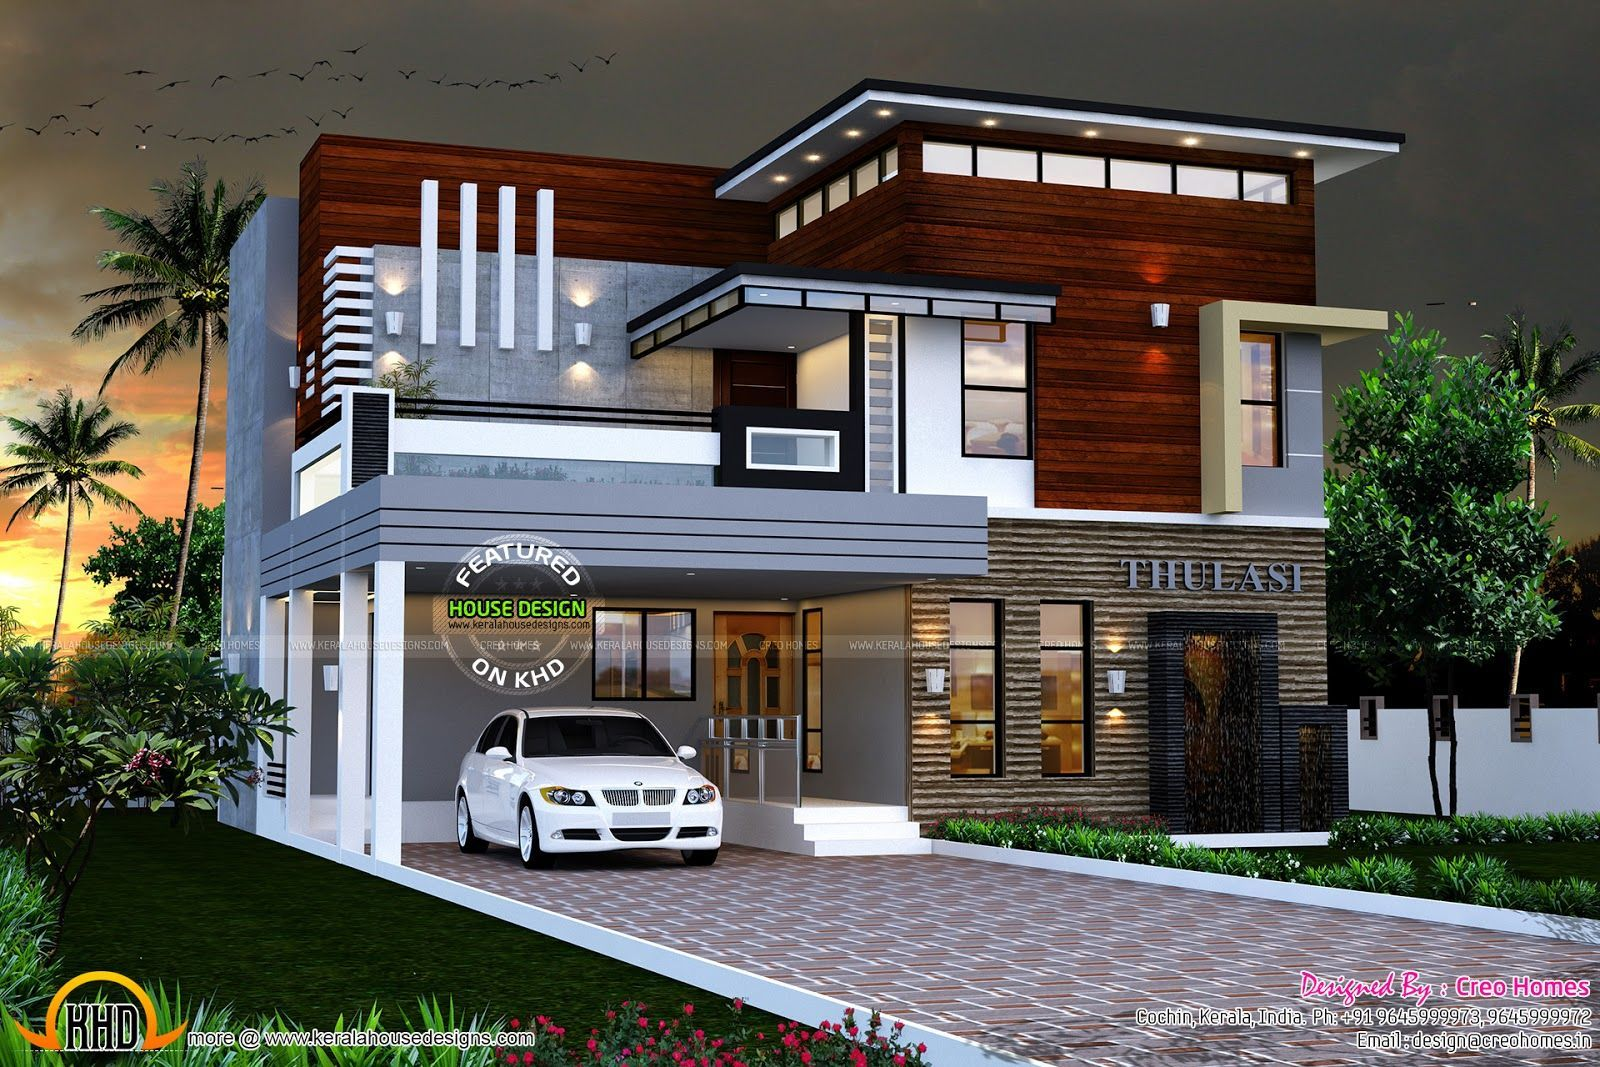 Modern contemporary house kerala home design and floor plans model also rh in pinterest